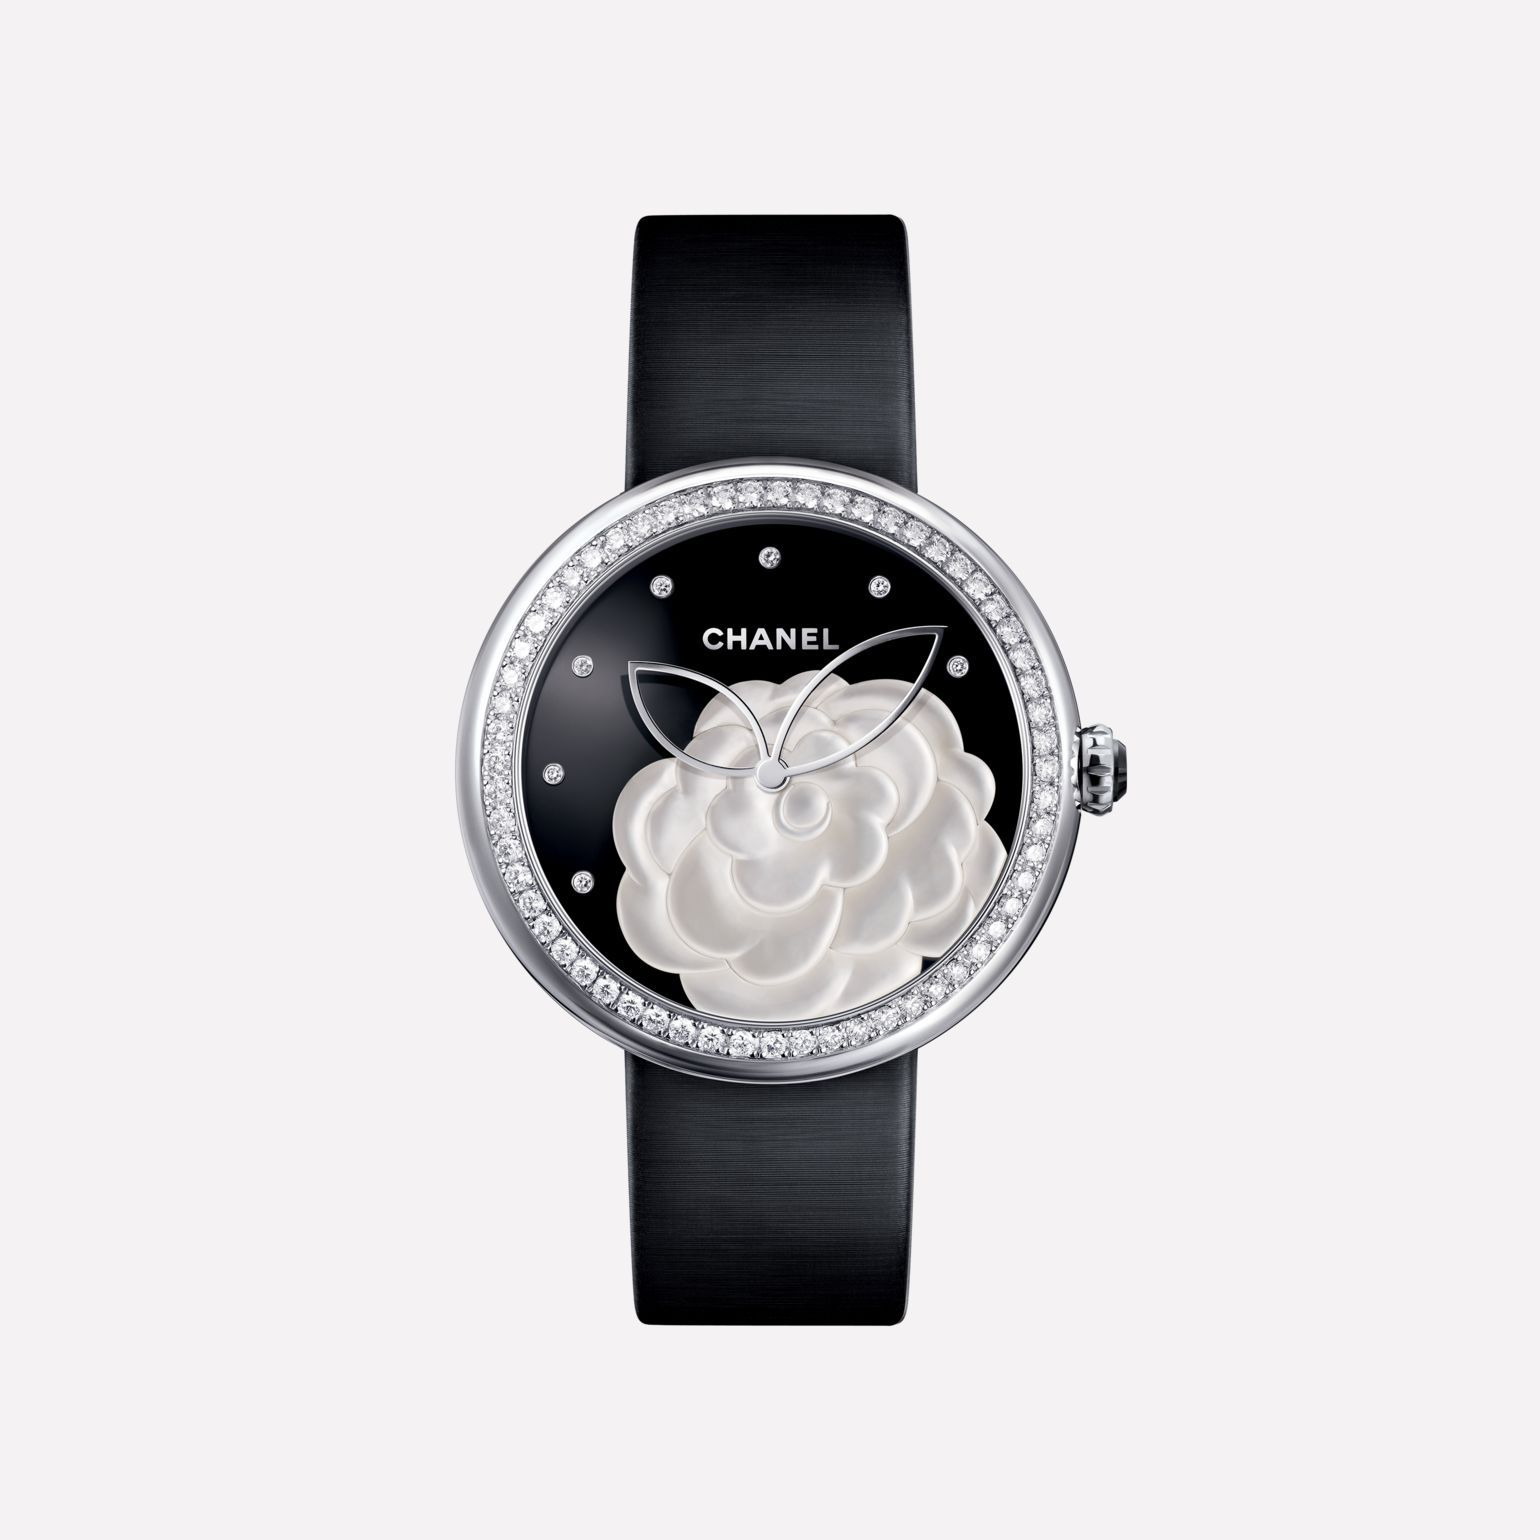 Discover the Mademoiselle Privé Watch - Pearl marquetry camellia, onyx dial, diamond indicators at the CHANEL Watches website